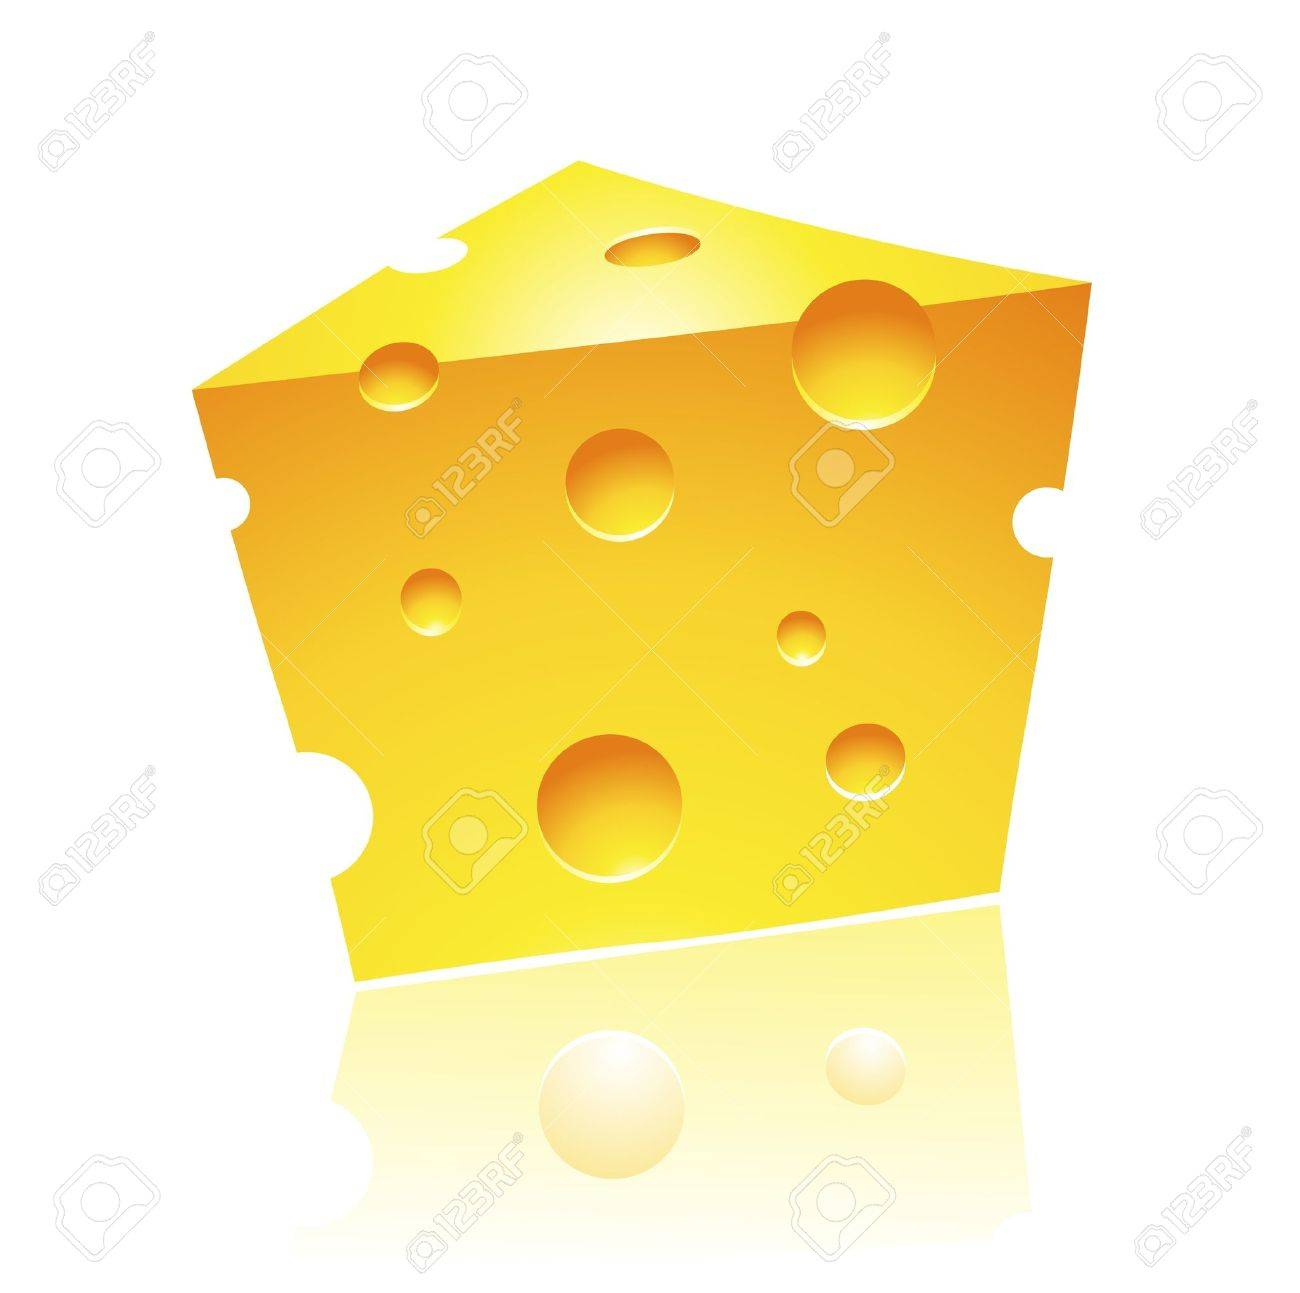 Vector Illustration of Cheddar Cheese with Reflection Stock Vector - 11084295